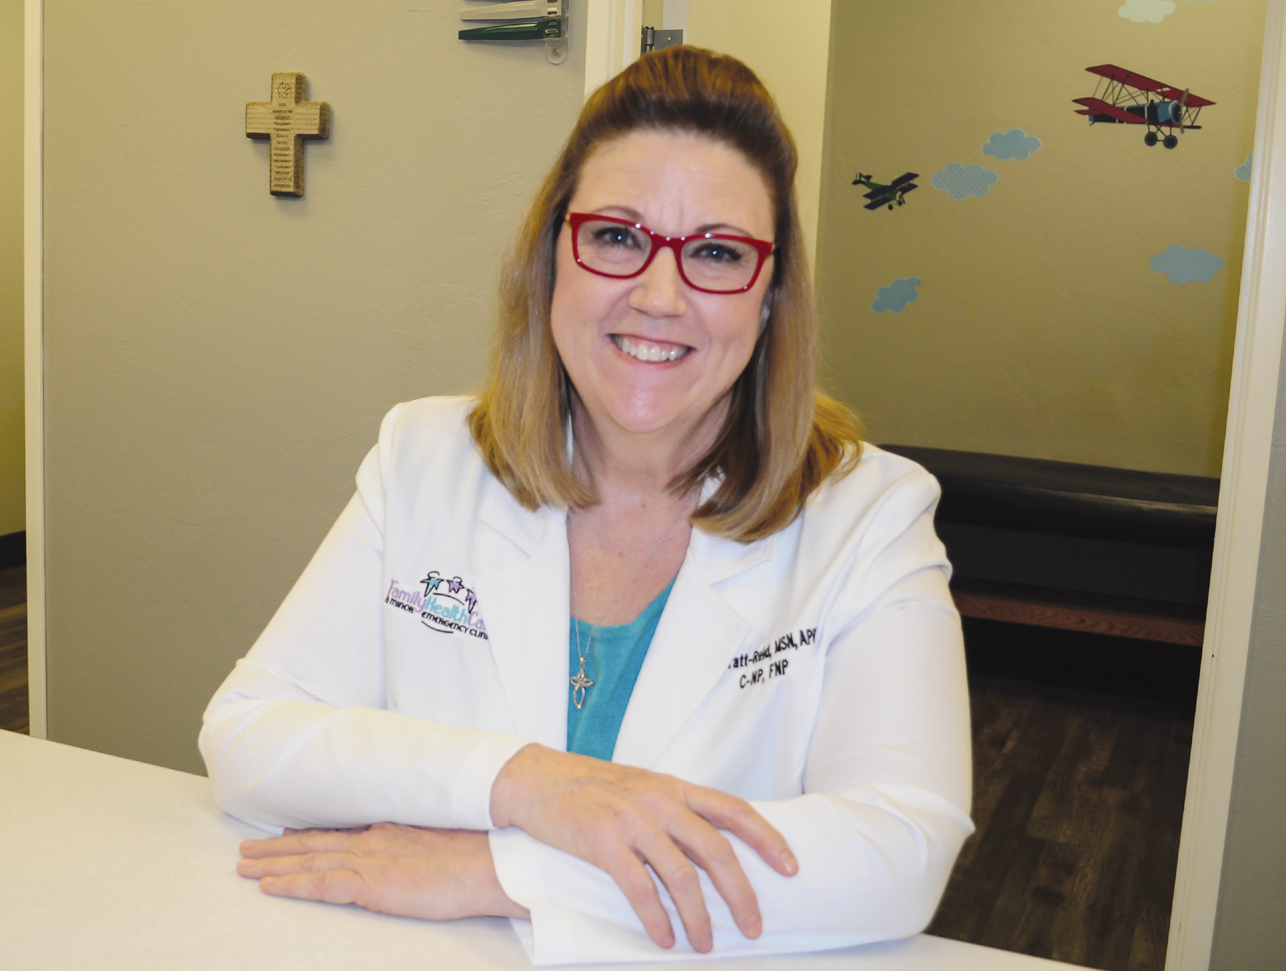 advanced nurse practitioners Advanced practice nurses have completed graduate-level education and have the clinical knowledge and skills to provide direct patient care they include nurse practitioners (nps), certified nurse midwives, certified registered nurse anesthetists, and clinical nurse specialists.